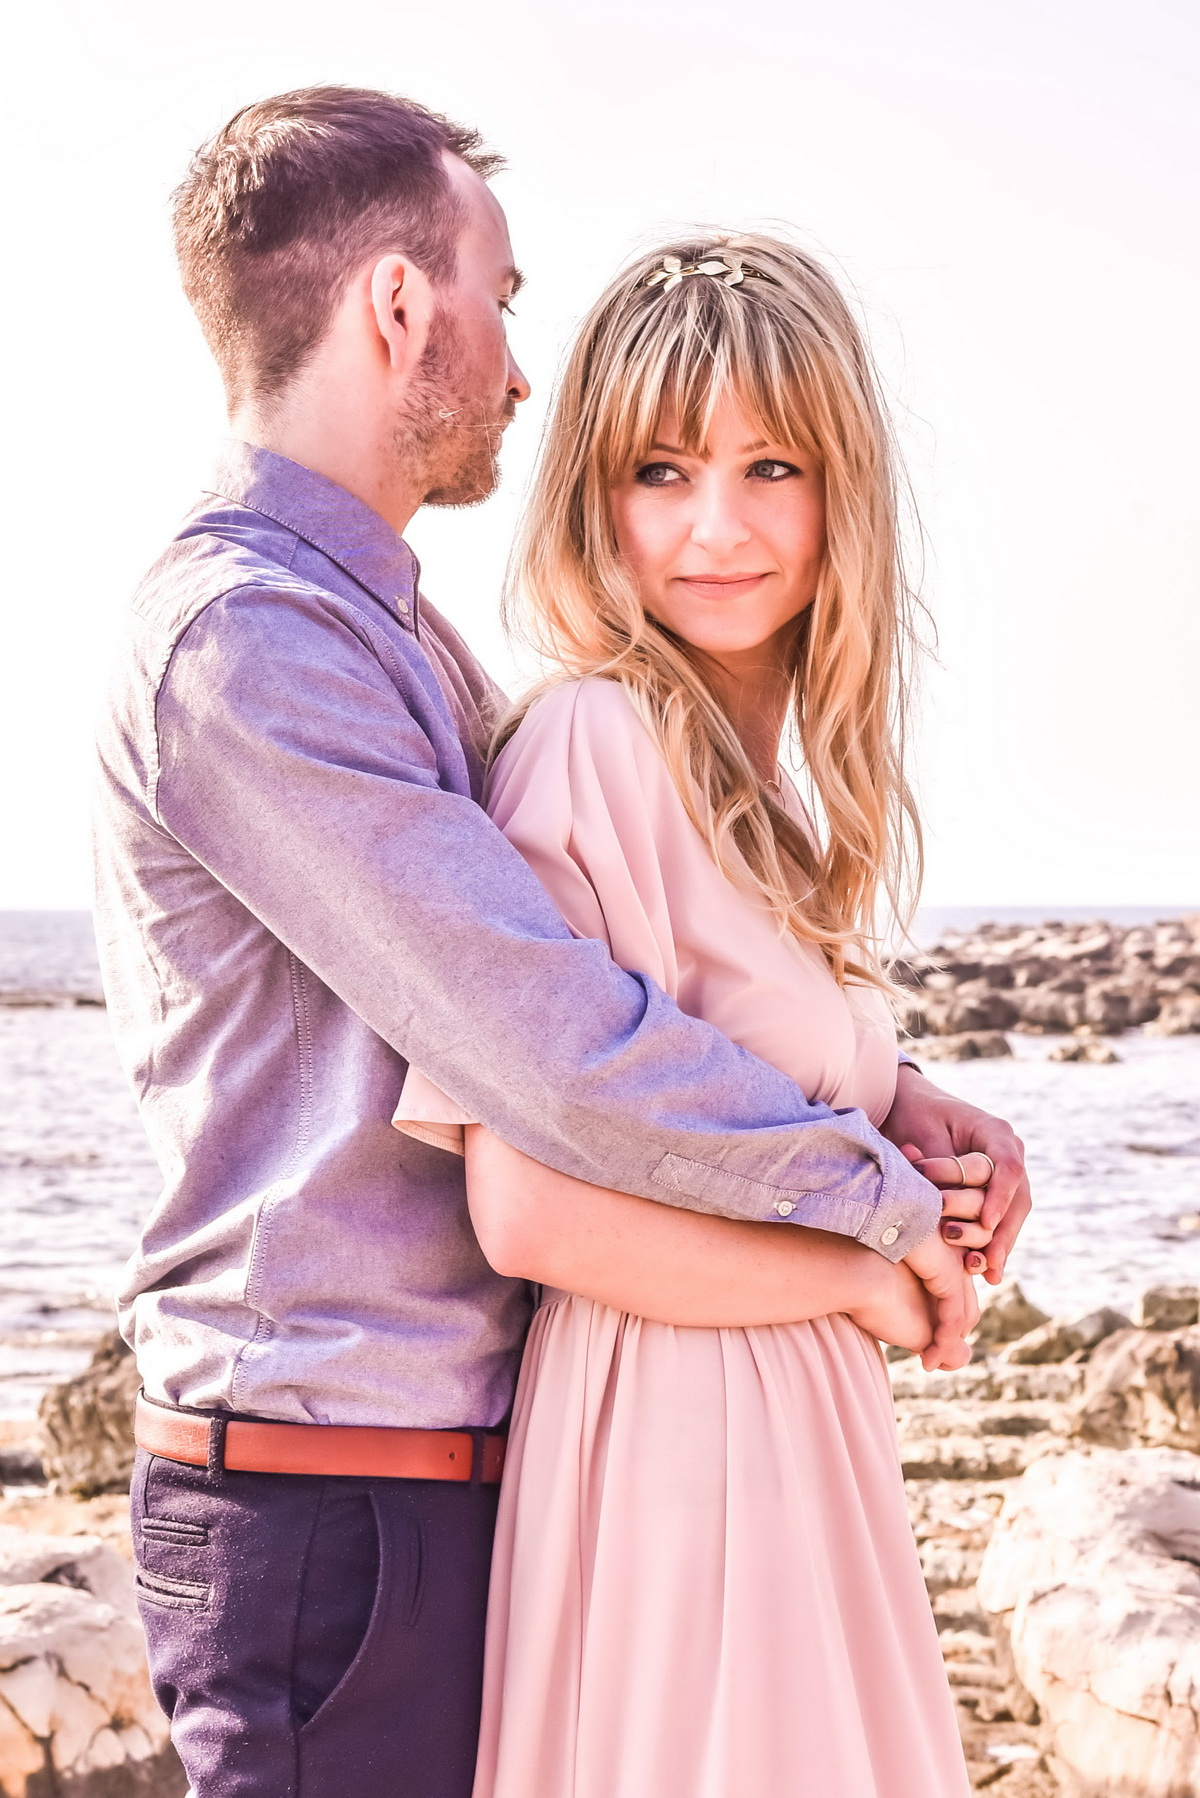 Claudia Sittig Photography - Portrait - Couple - Lifestyle - 41